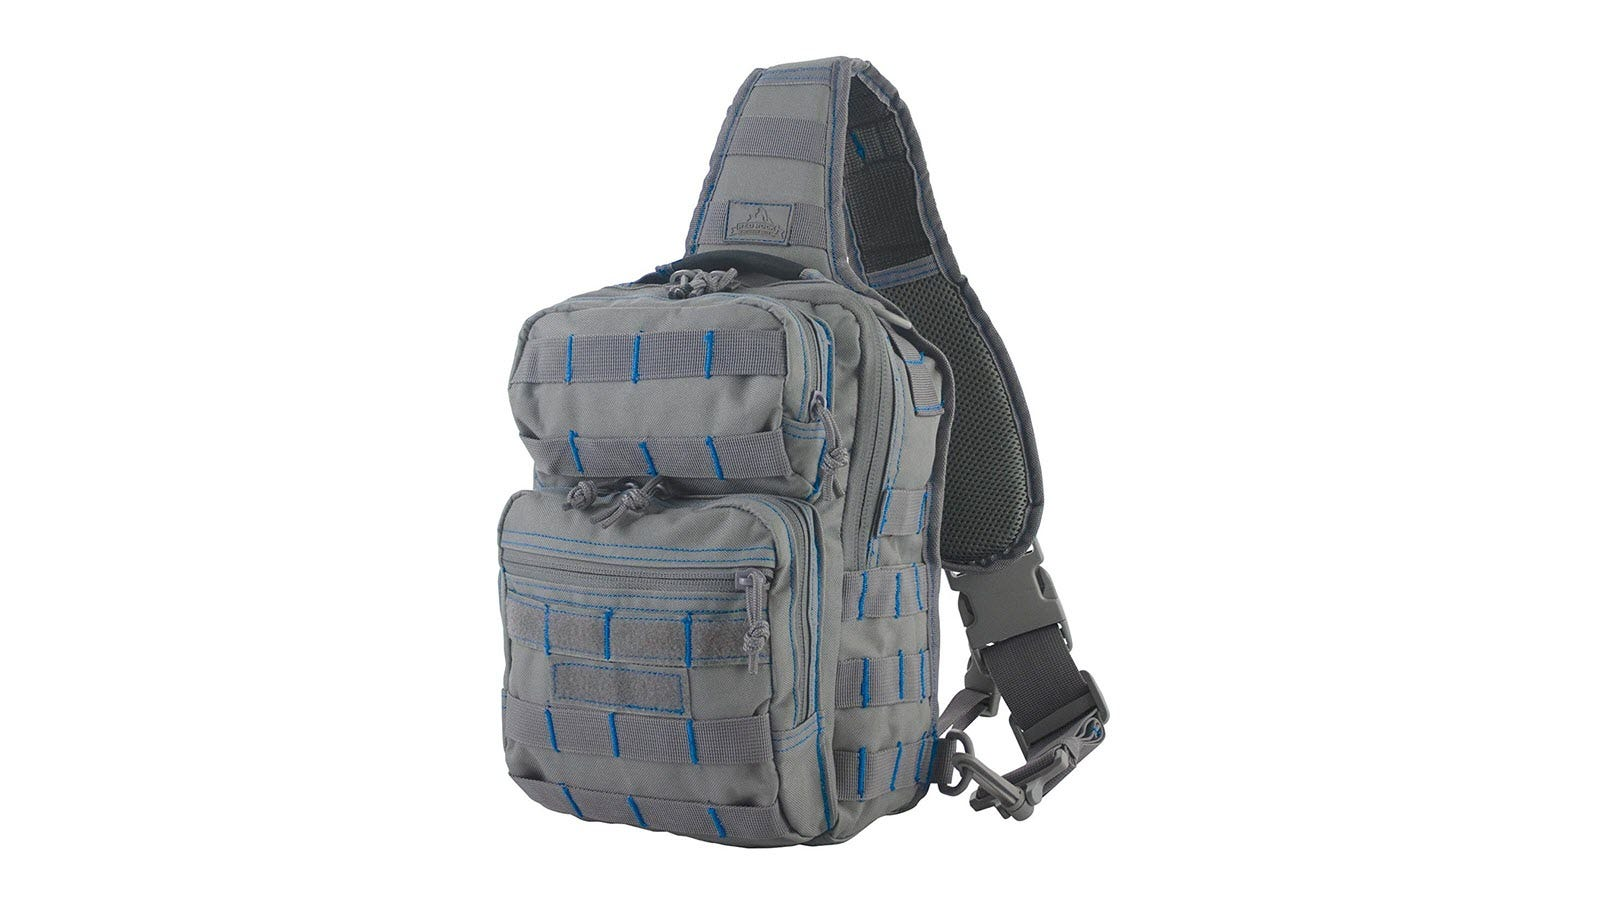 Red Rock Outdoor Gear - Rover sling seen from the back in grey and blue trim.